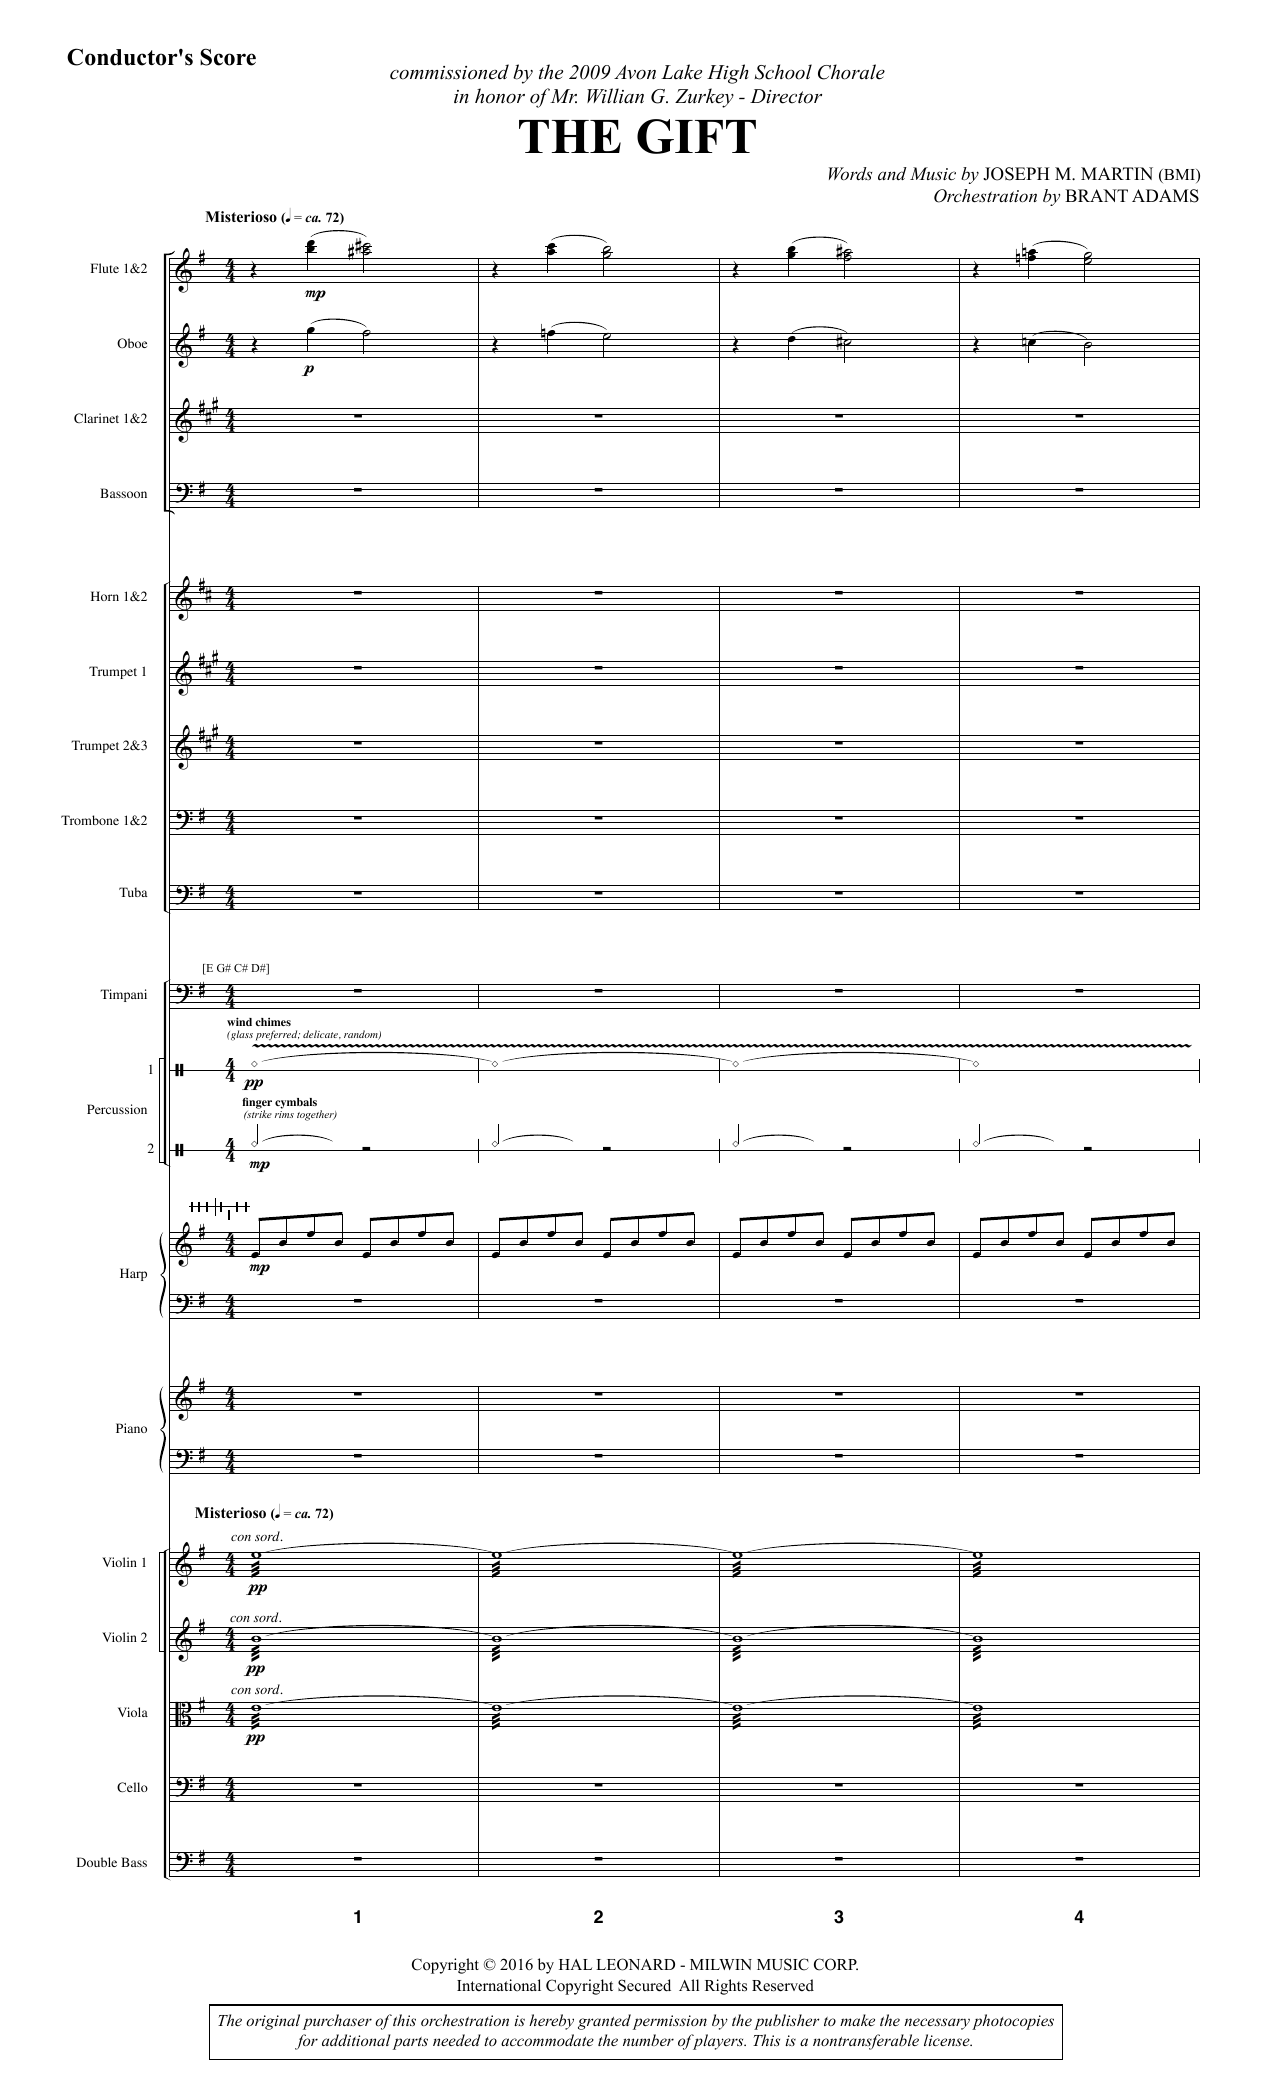 Joseph M. Martin The Gift - Full Score sheet music notes and chords. Download Printable PDF.